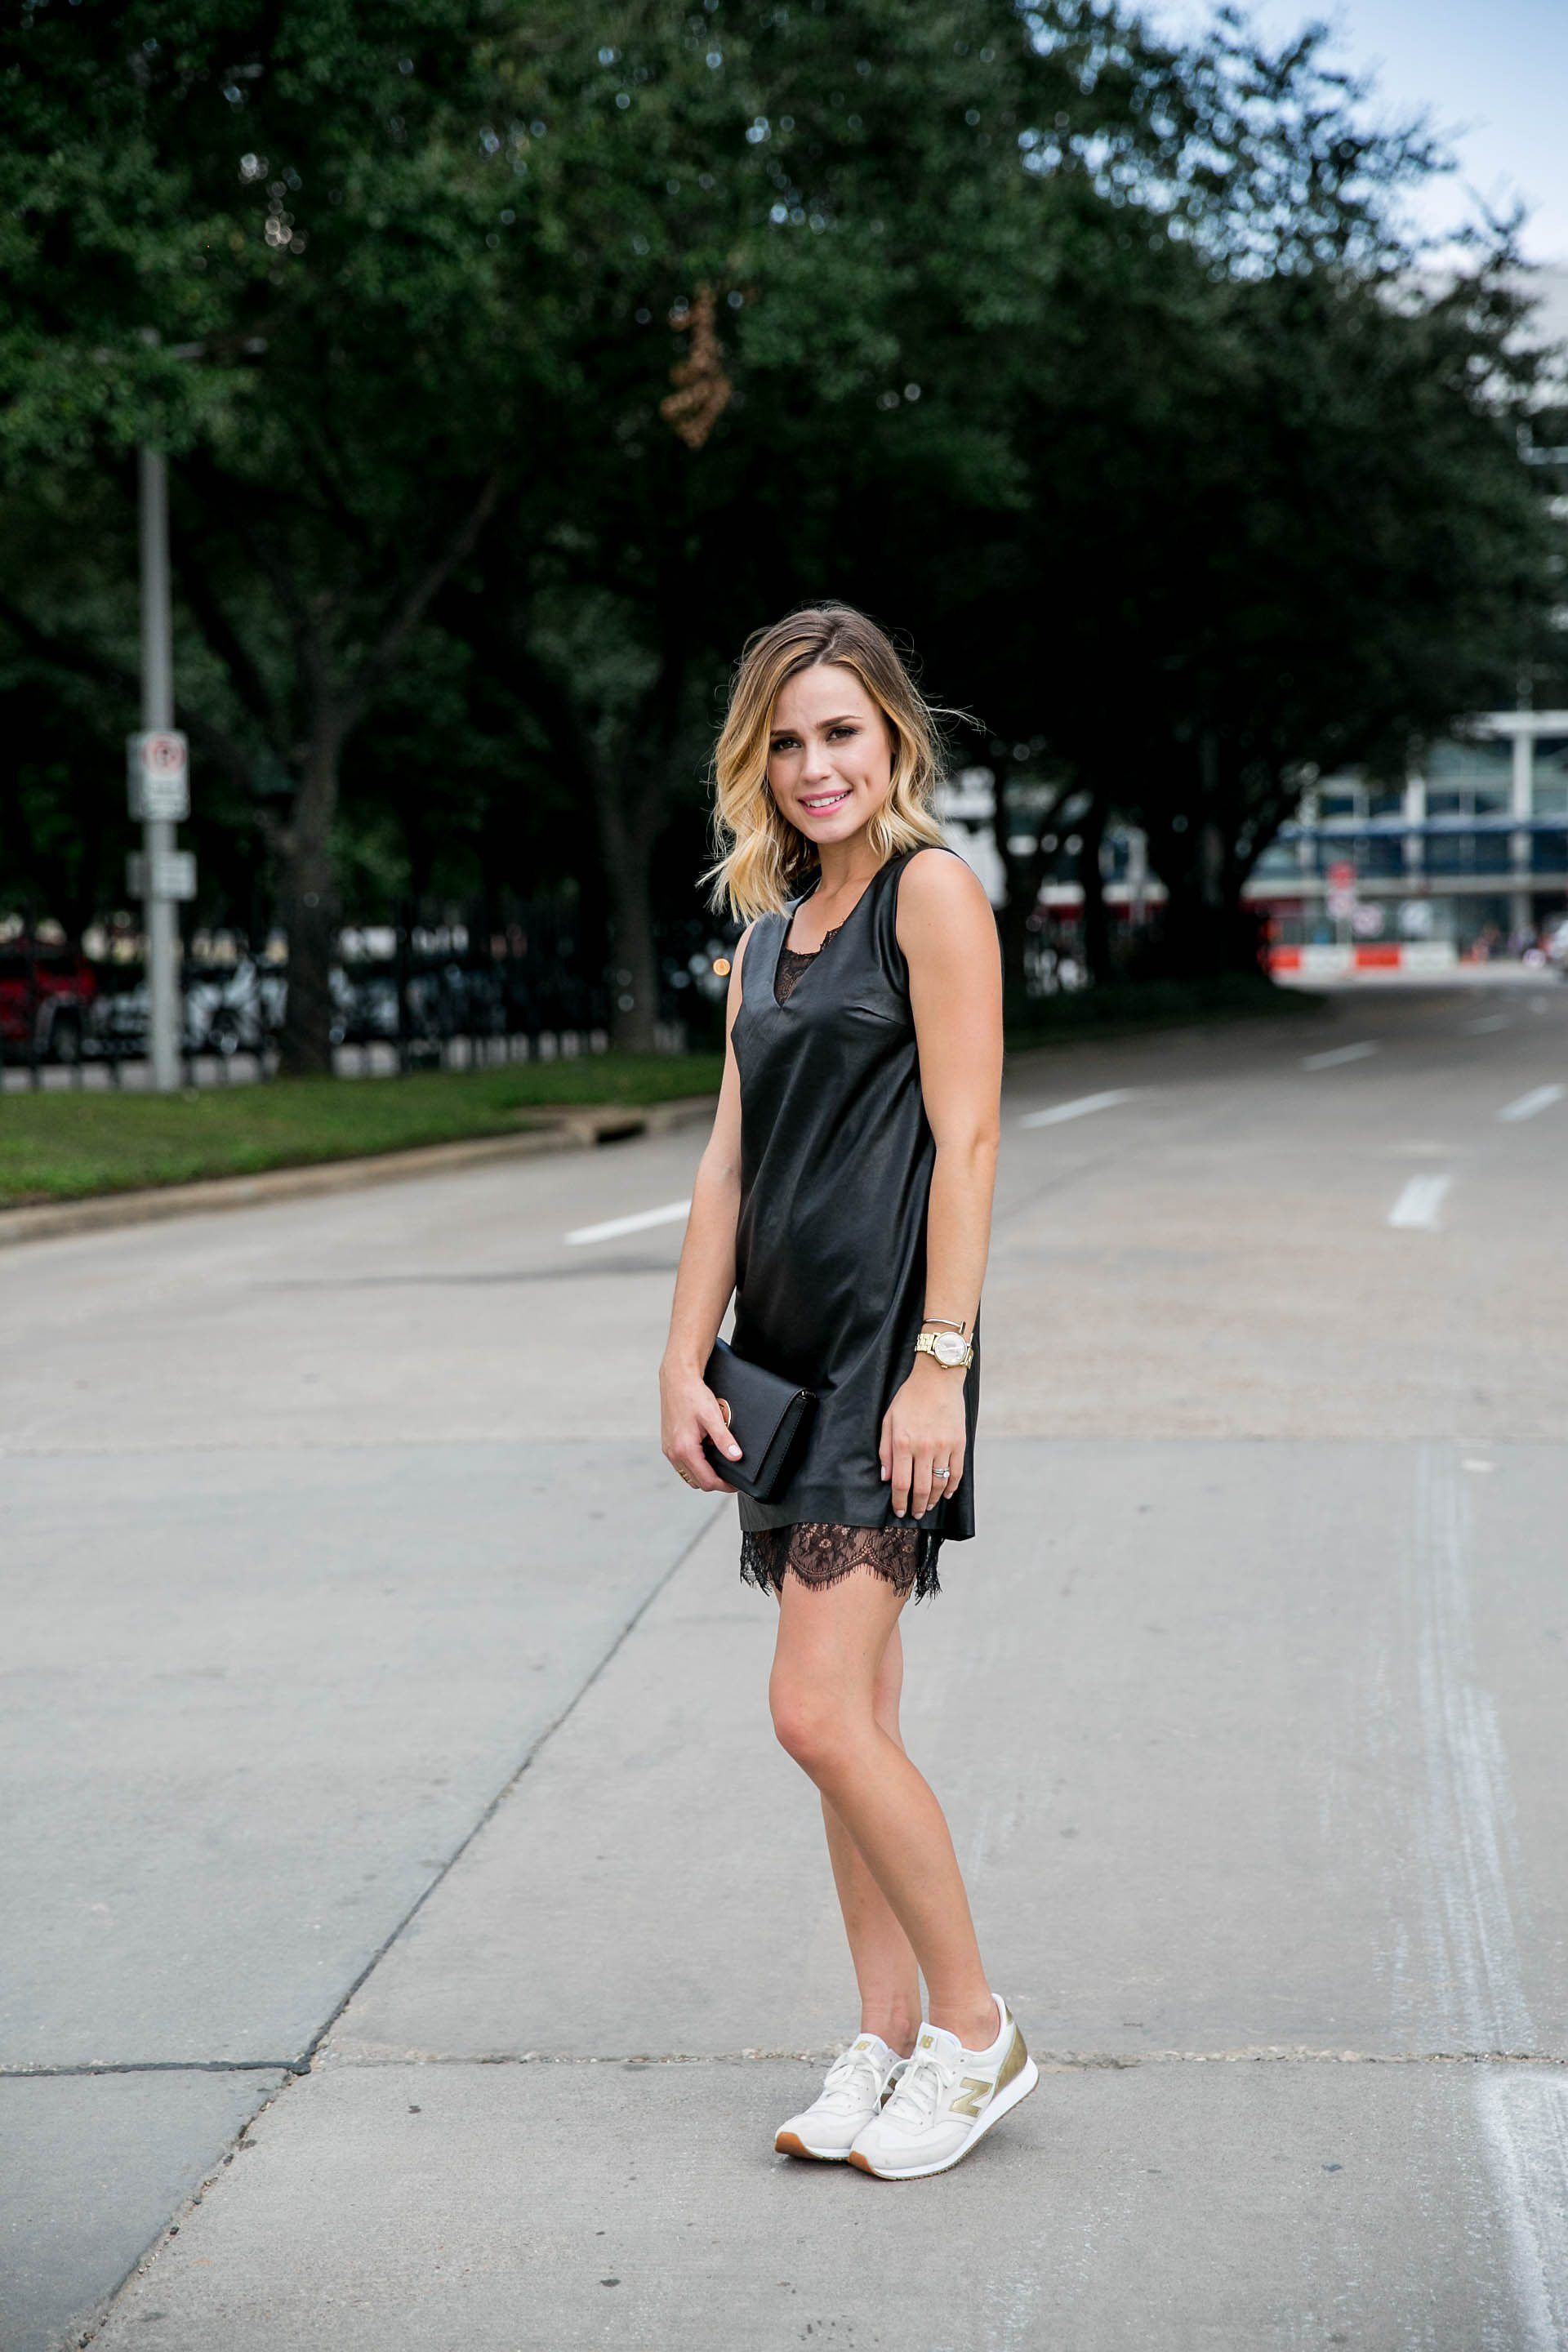 Leather Dress Sneakers Uptown With Elly Brown Dress With Sneakers Fashion Sneakers Fashion Outfits [ 2880 x 1920 Pixel ]